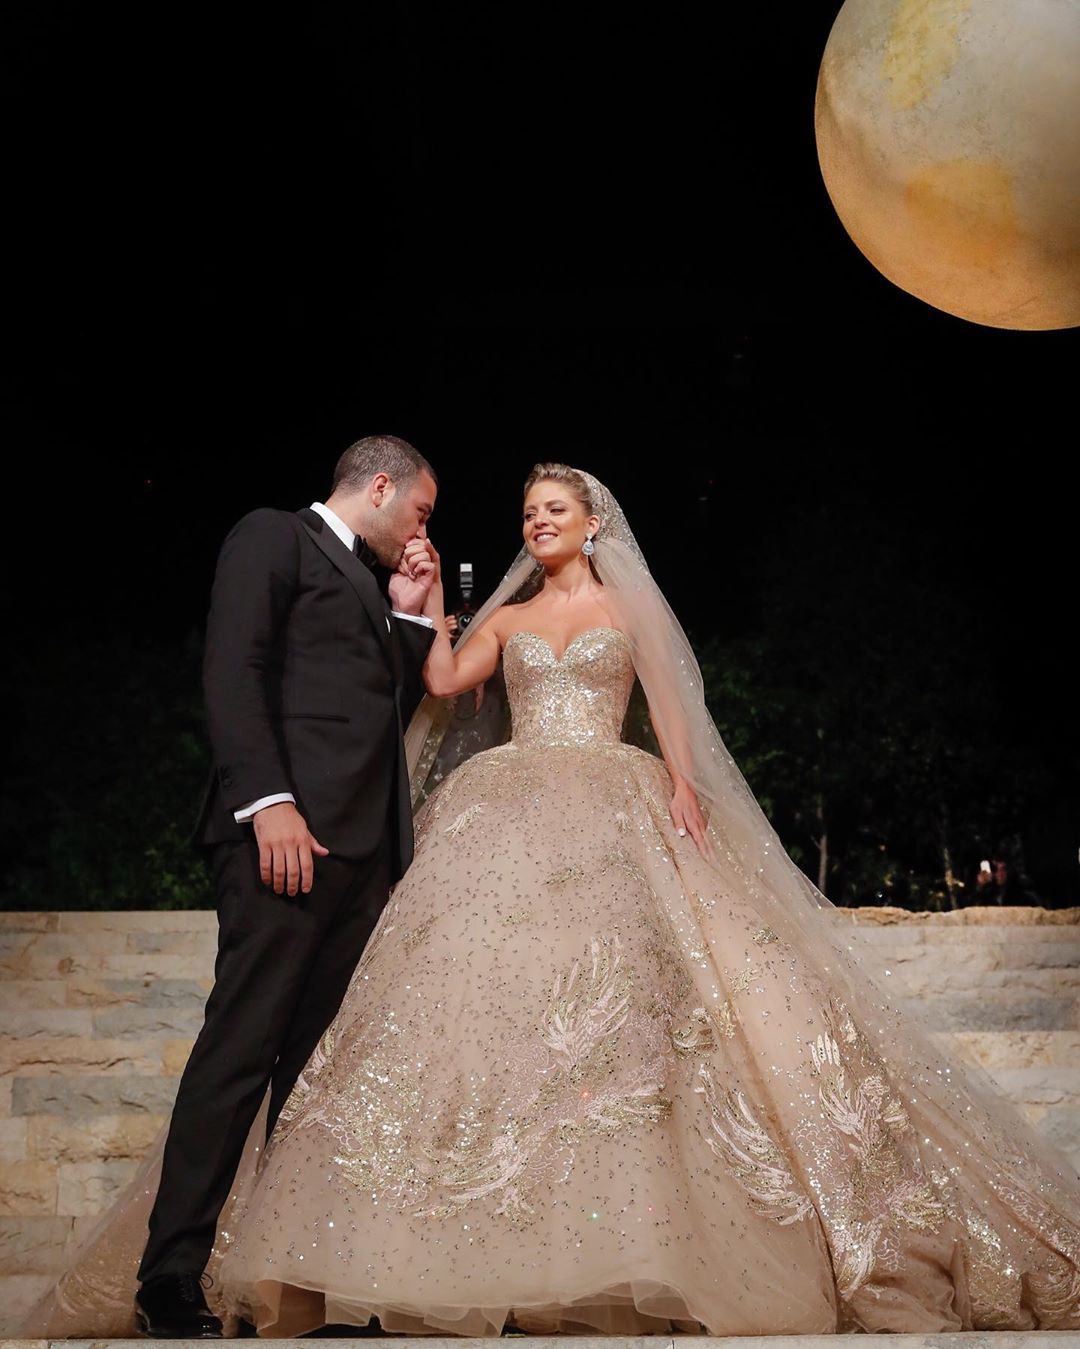 Elie Saab Jr. and Christina Mourad wed in Lebanon